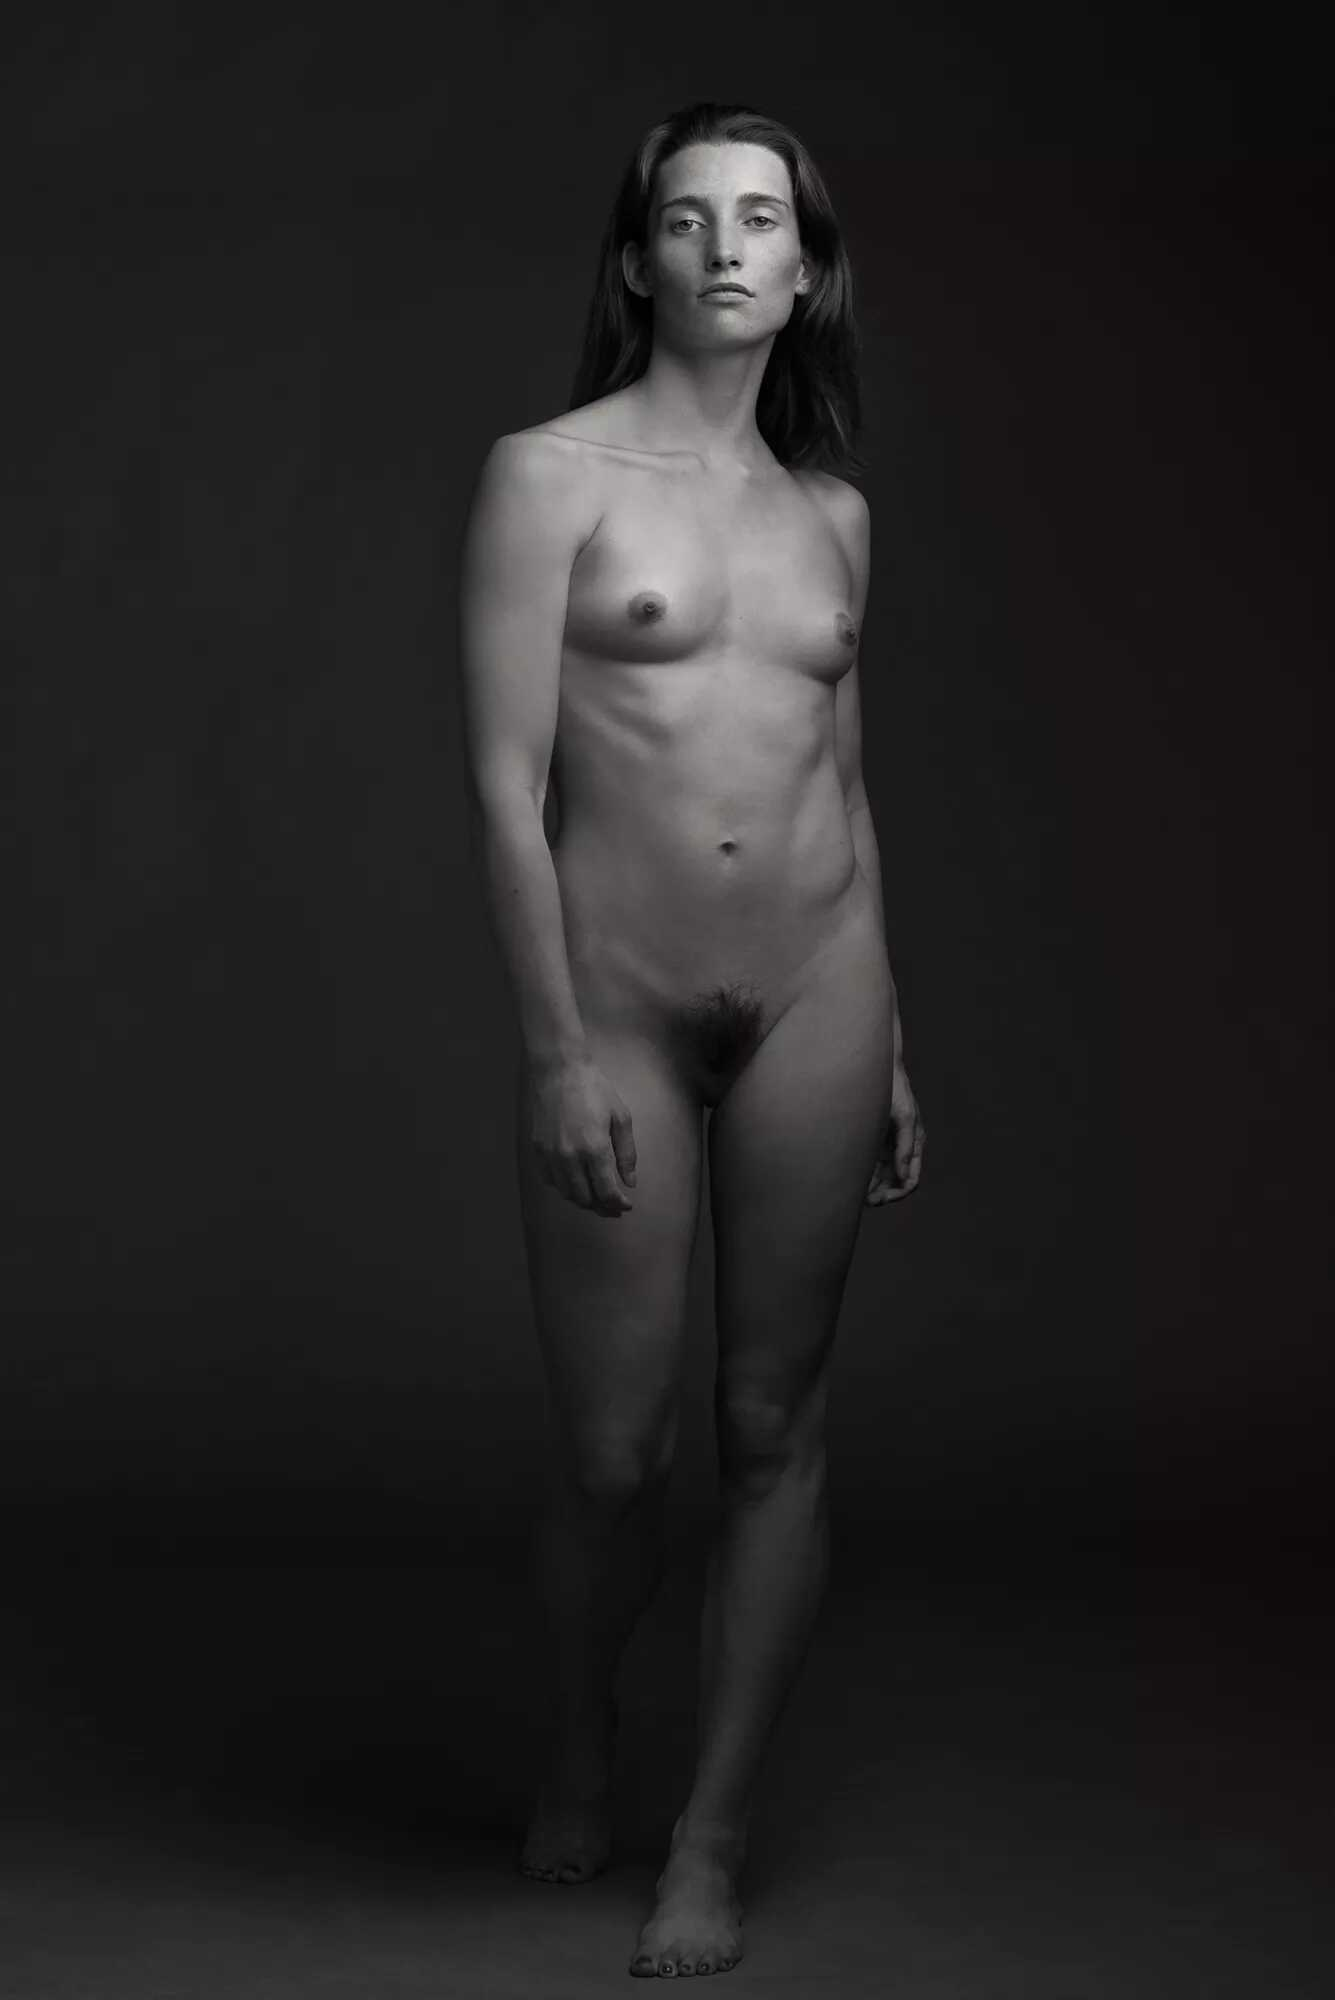 Richard-Westerhuis-NUDE-Nicky.jpg